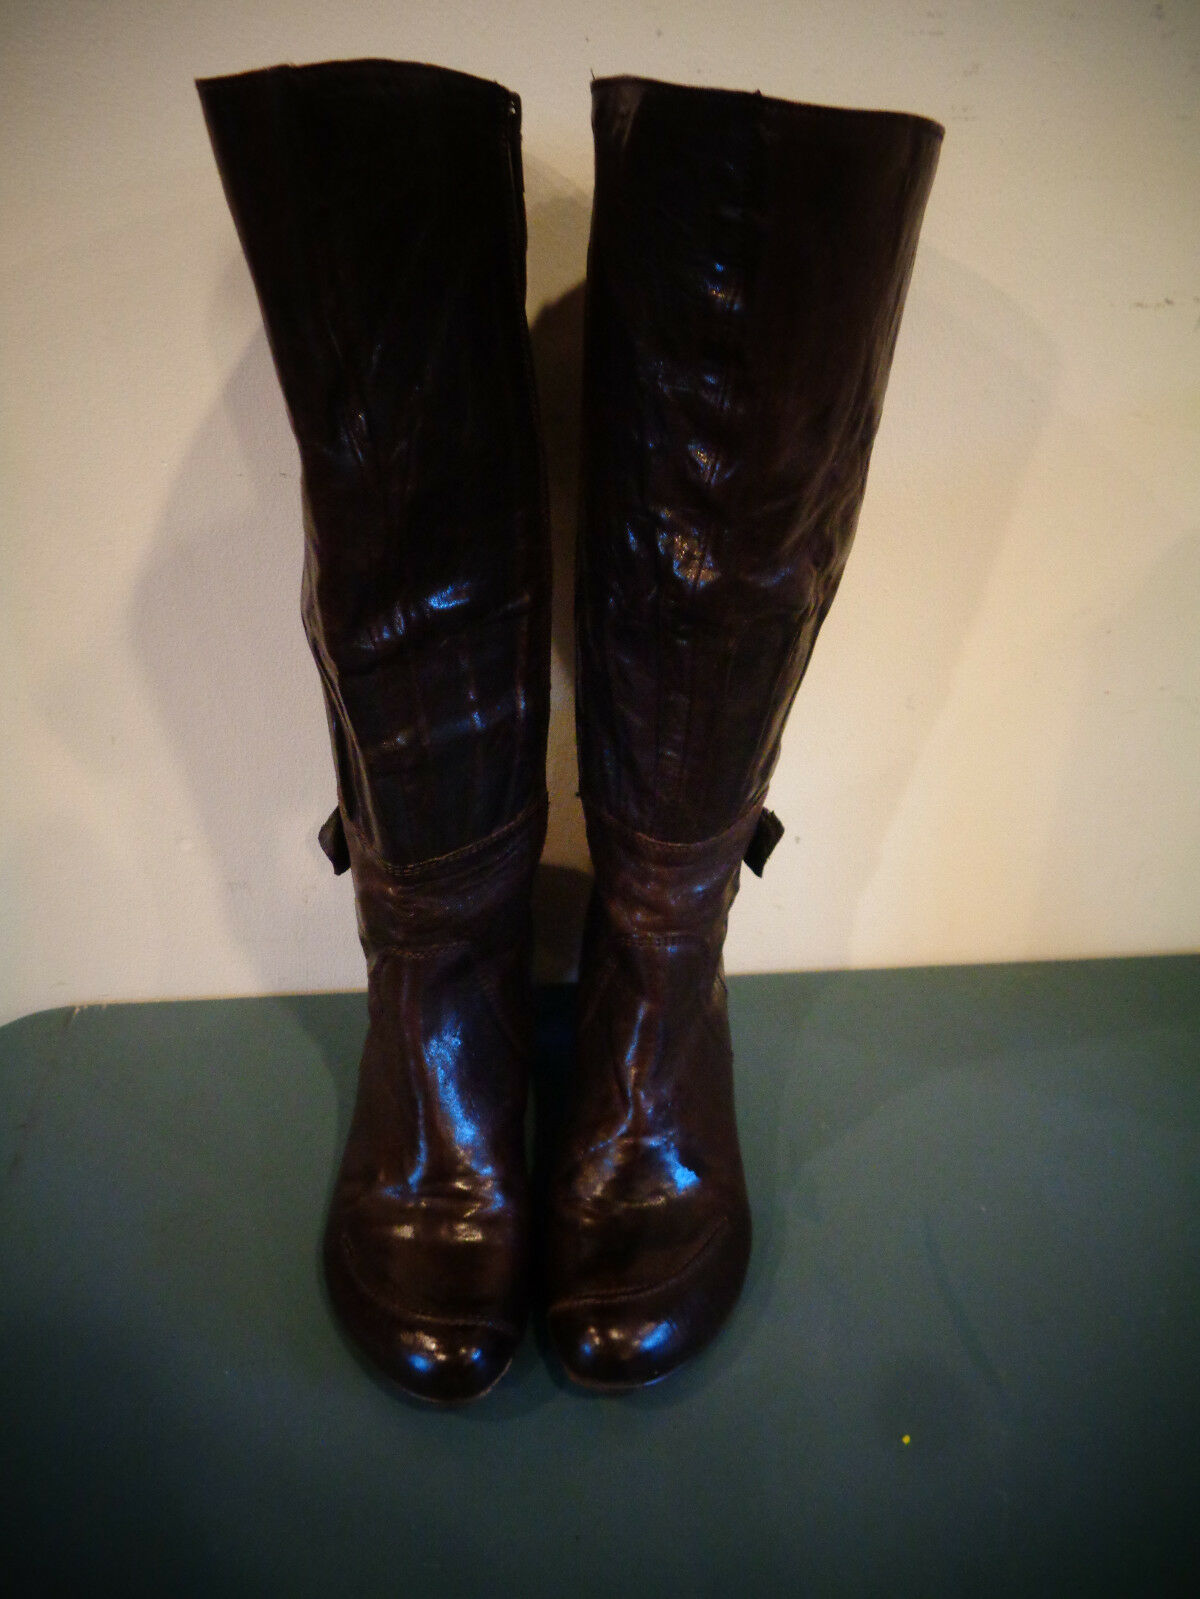 FIDJI TALL BROWN LEATHER ZIPPER BOOTS WOMEN'S SIZE 38.5 MADE IN PORTUGAL